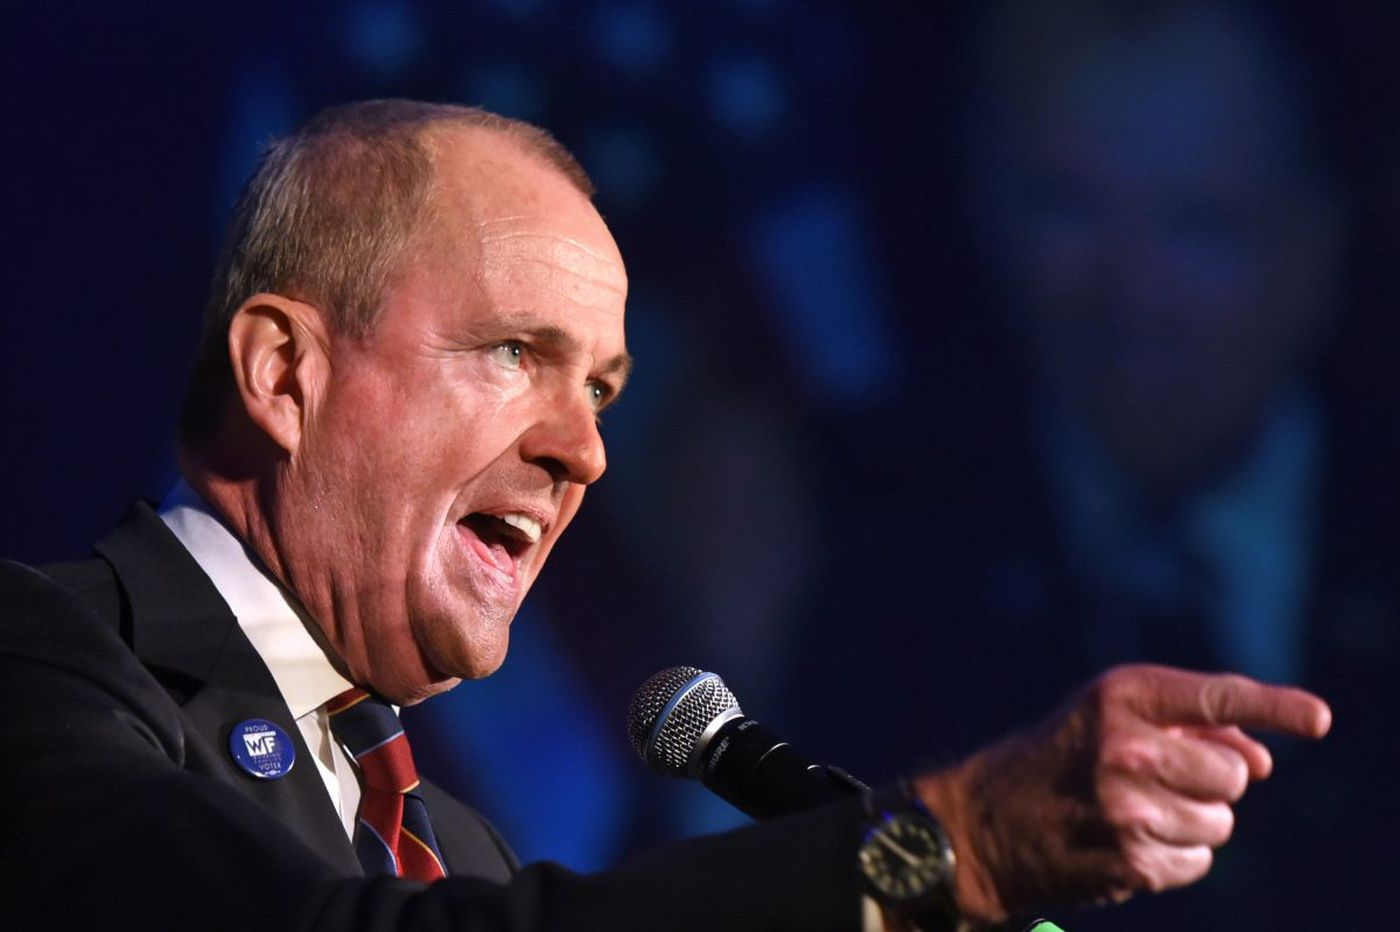 Phil Murphy made big promises to New Jersey cannabis supporters. Here's what he has to do now | Philly420